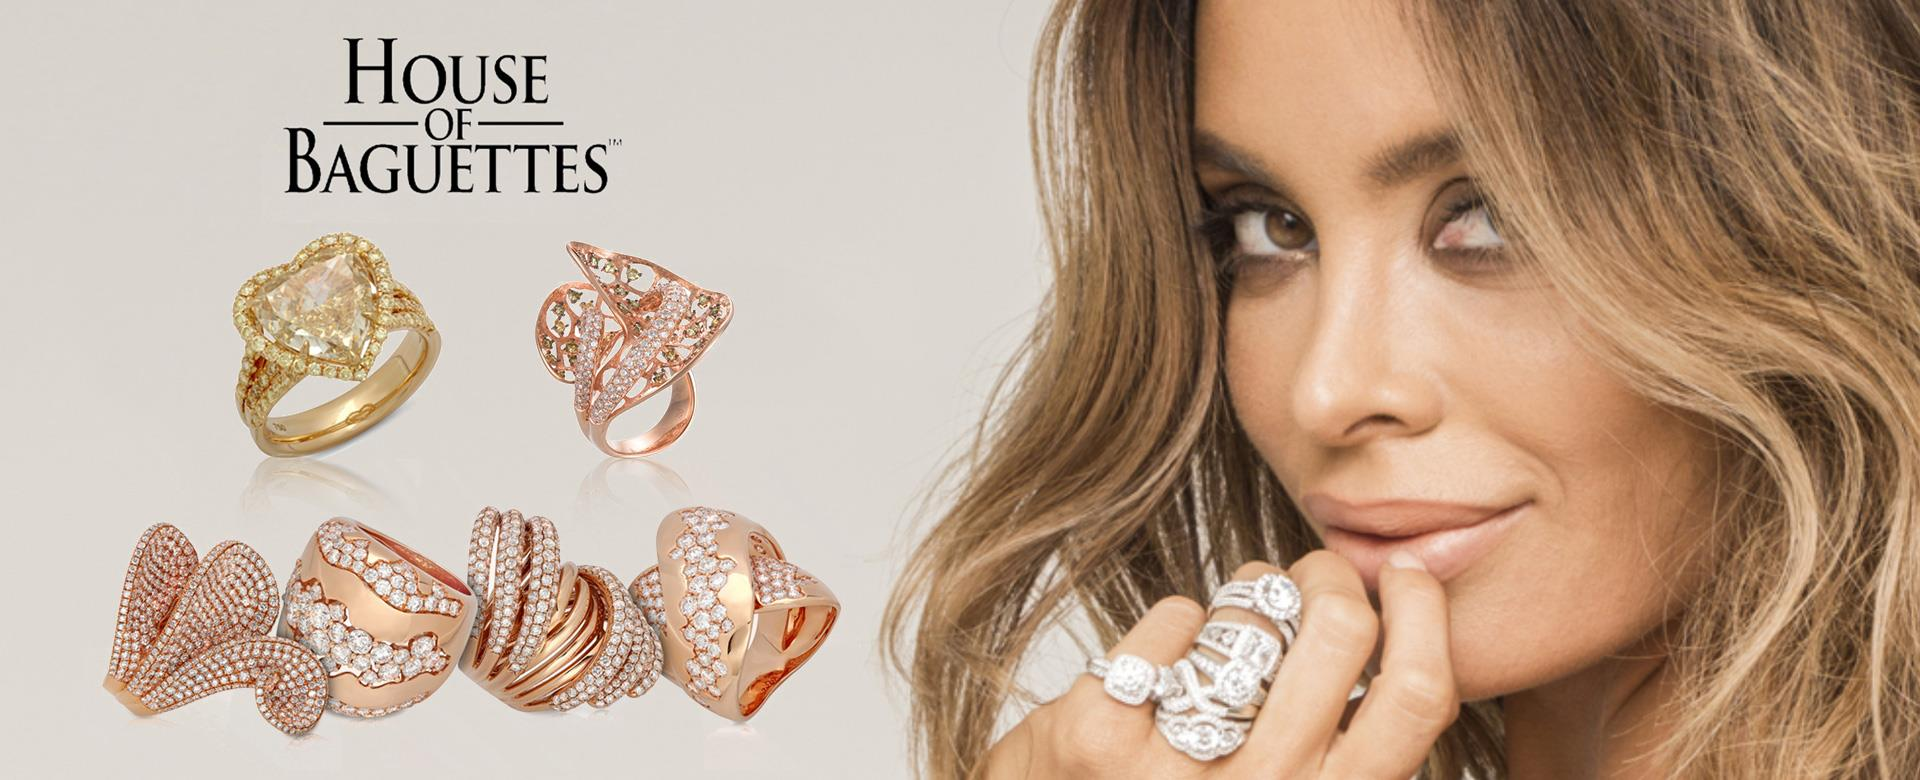 Jay S Jewelry Your Trusted Source For Diamond Gemstone Jewelry In